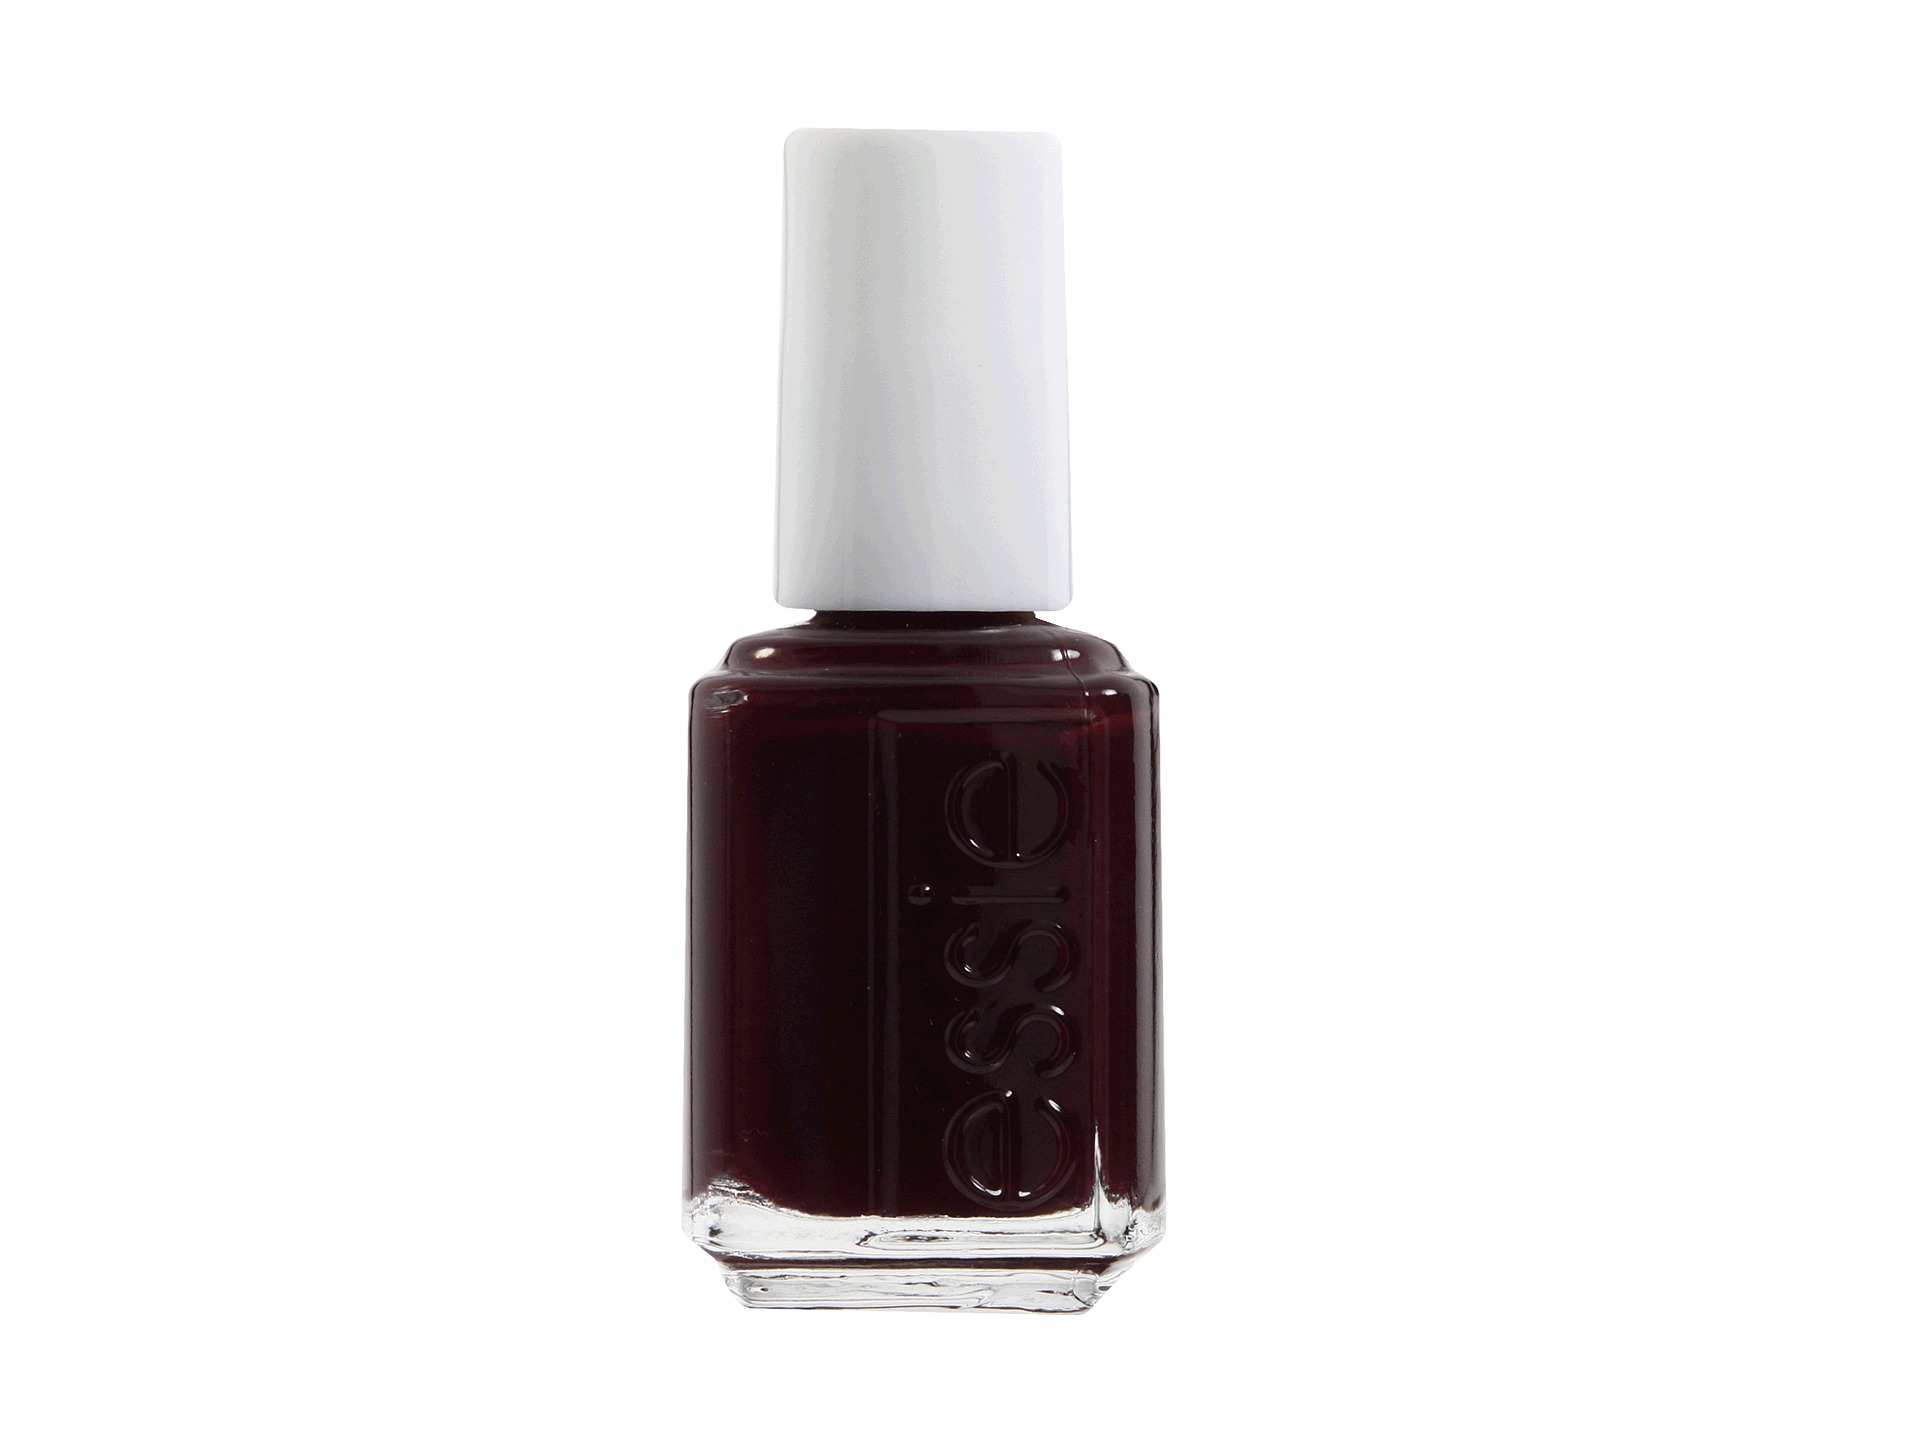 Essie Plum Nail Polish Shades